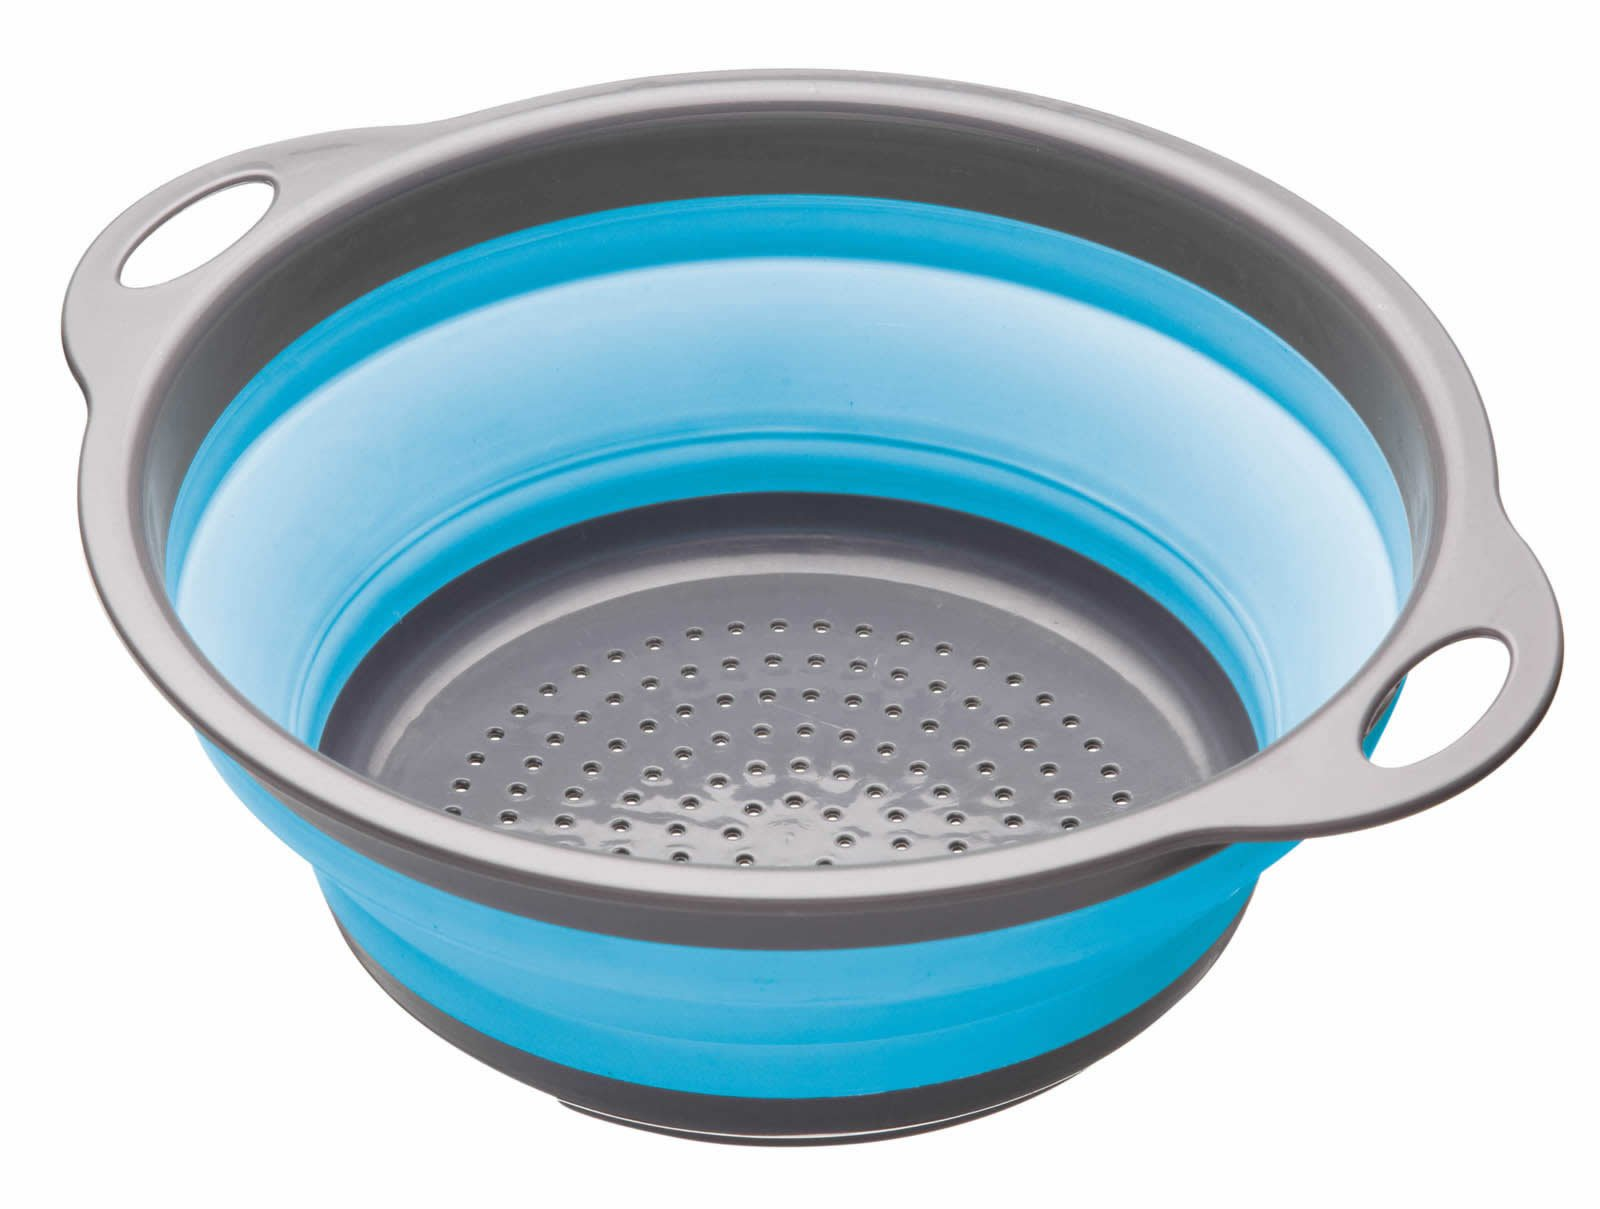 Kitchen Craft Colourworks - Escurridor plegable (24 cm), color azul product image